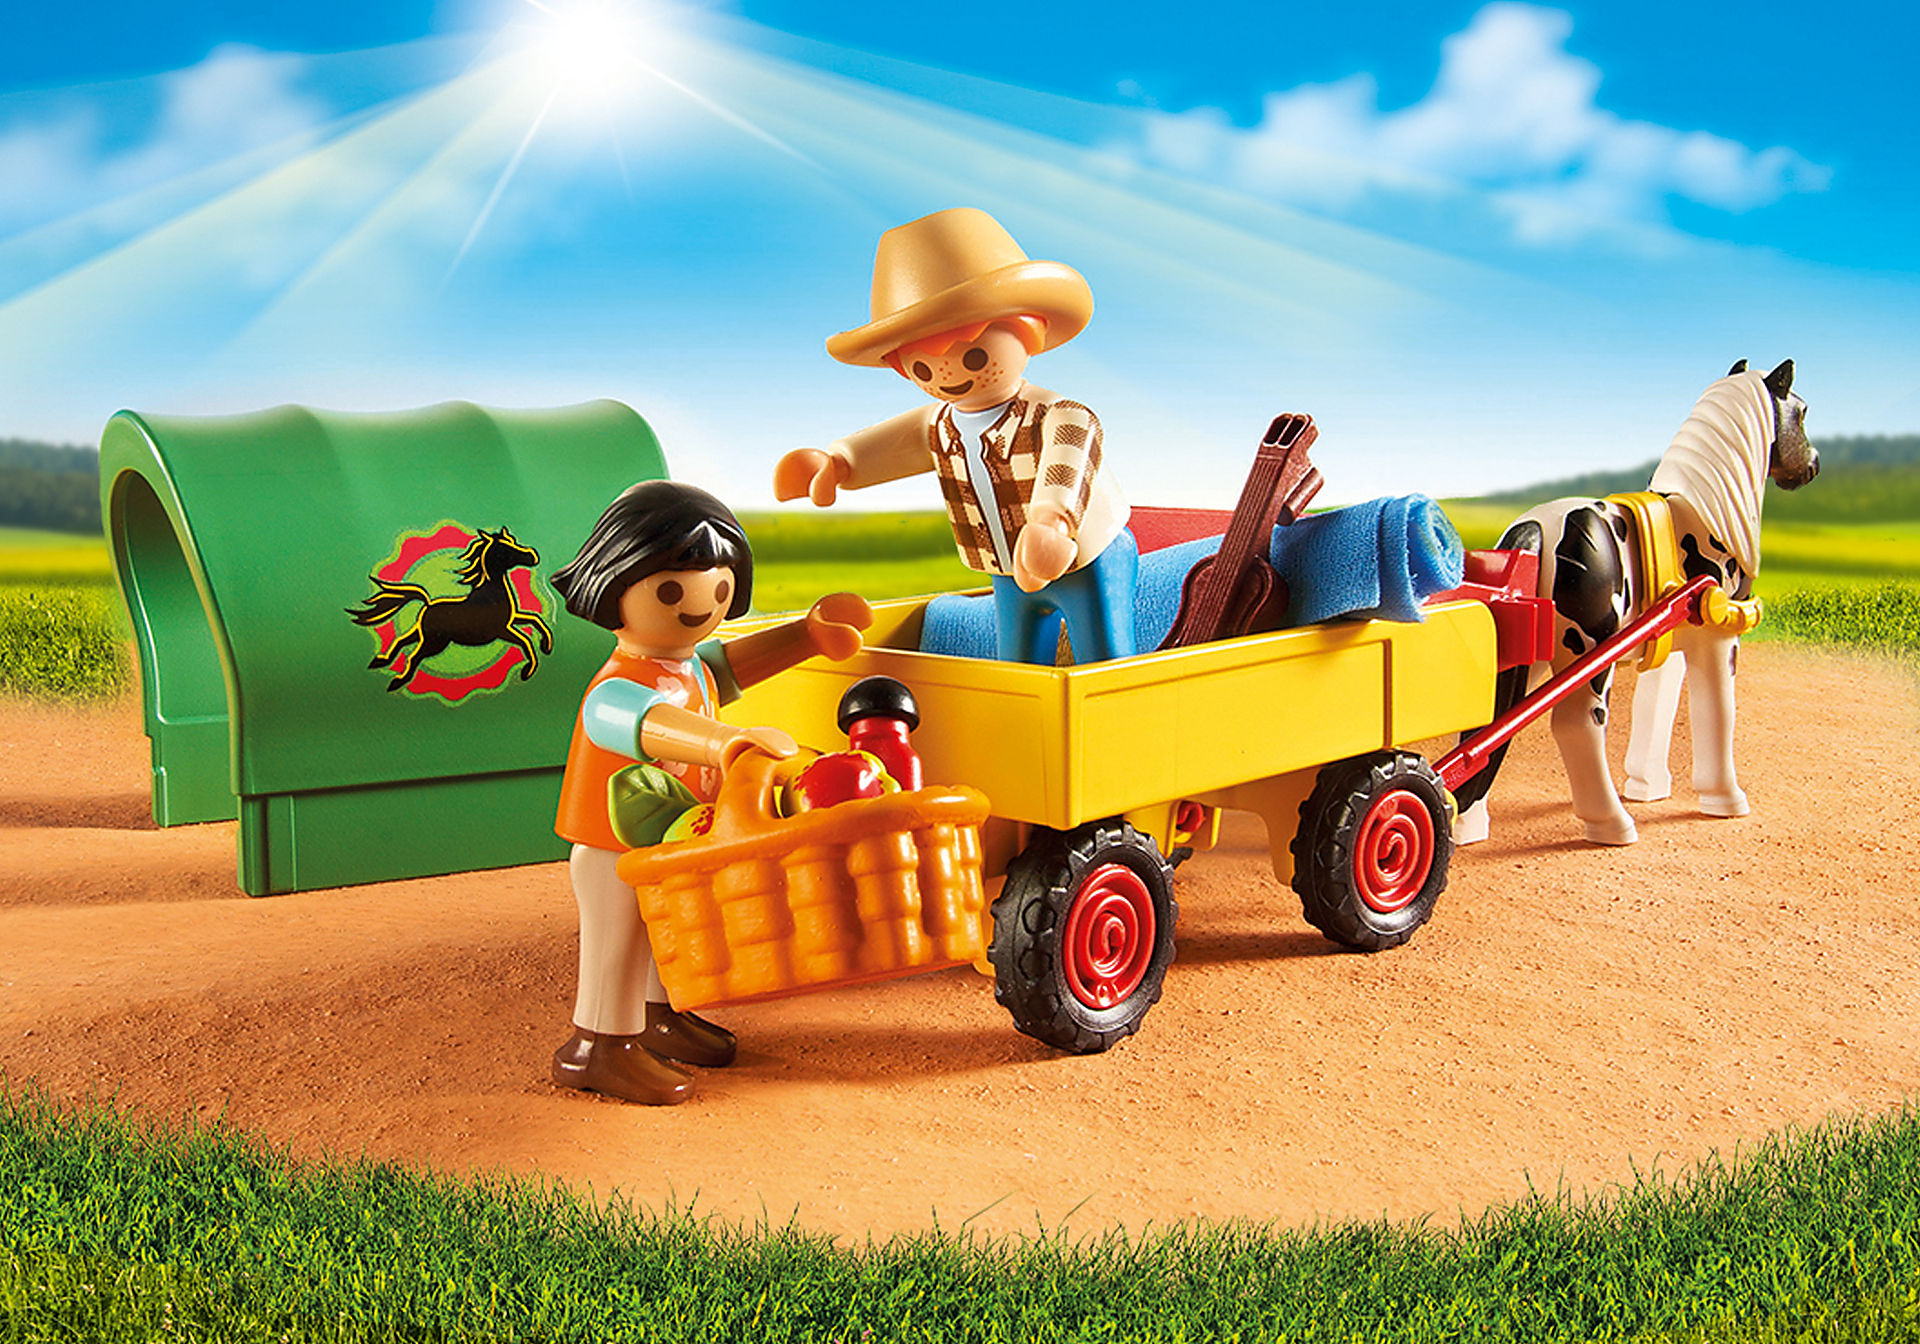 http://media.playmobil.com/i/playmobil/5686_product_extra1/Picnic with Pony Wagon